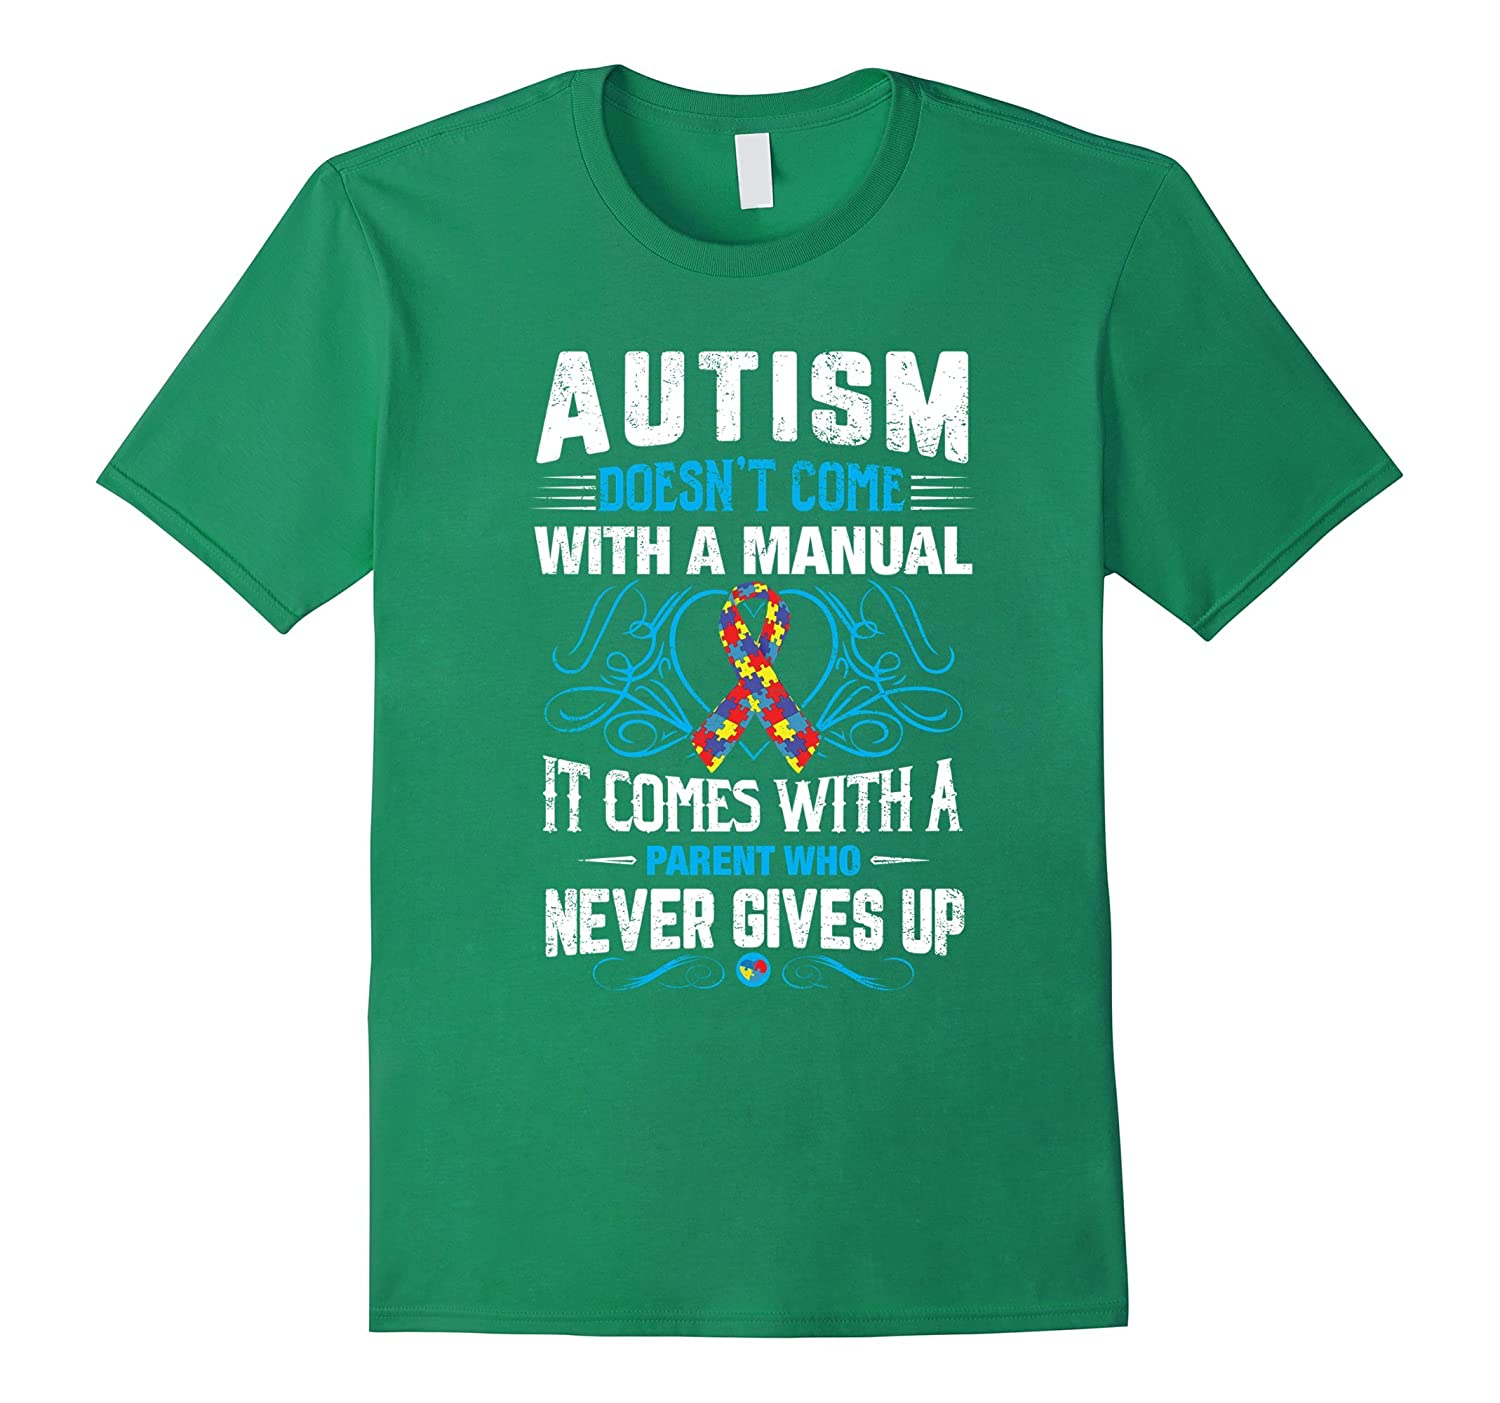 AUTISM DOESN'T COME WITH A MANUAL, IT COMES WITH A PARENT-TH